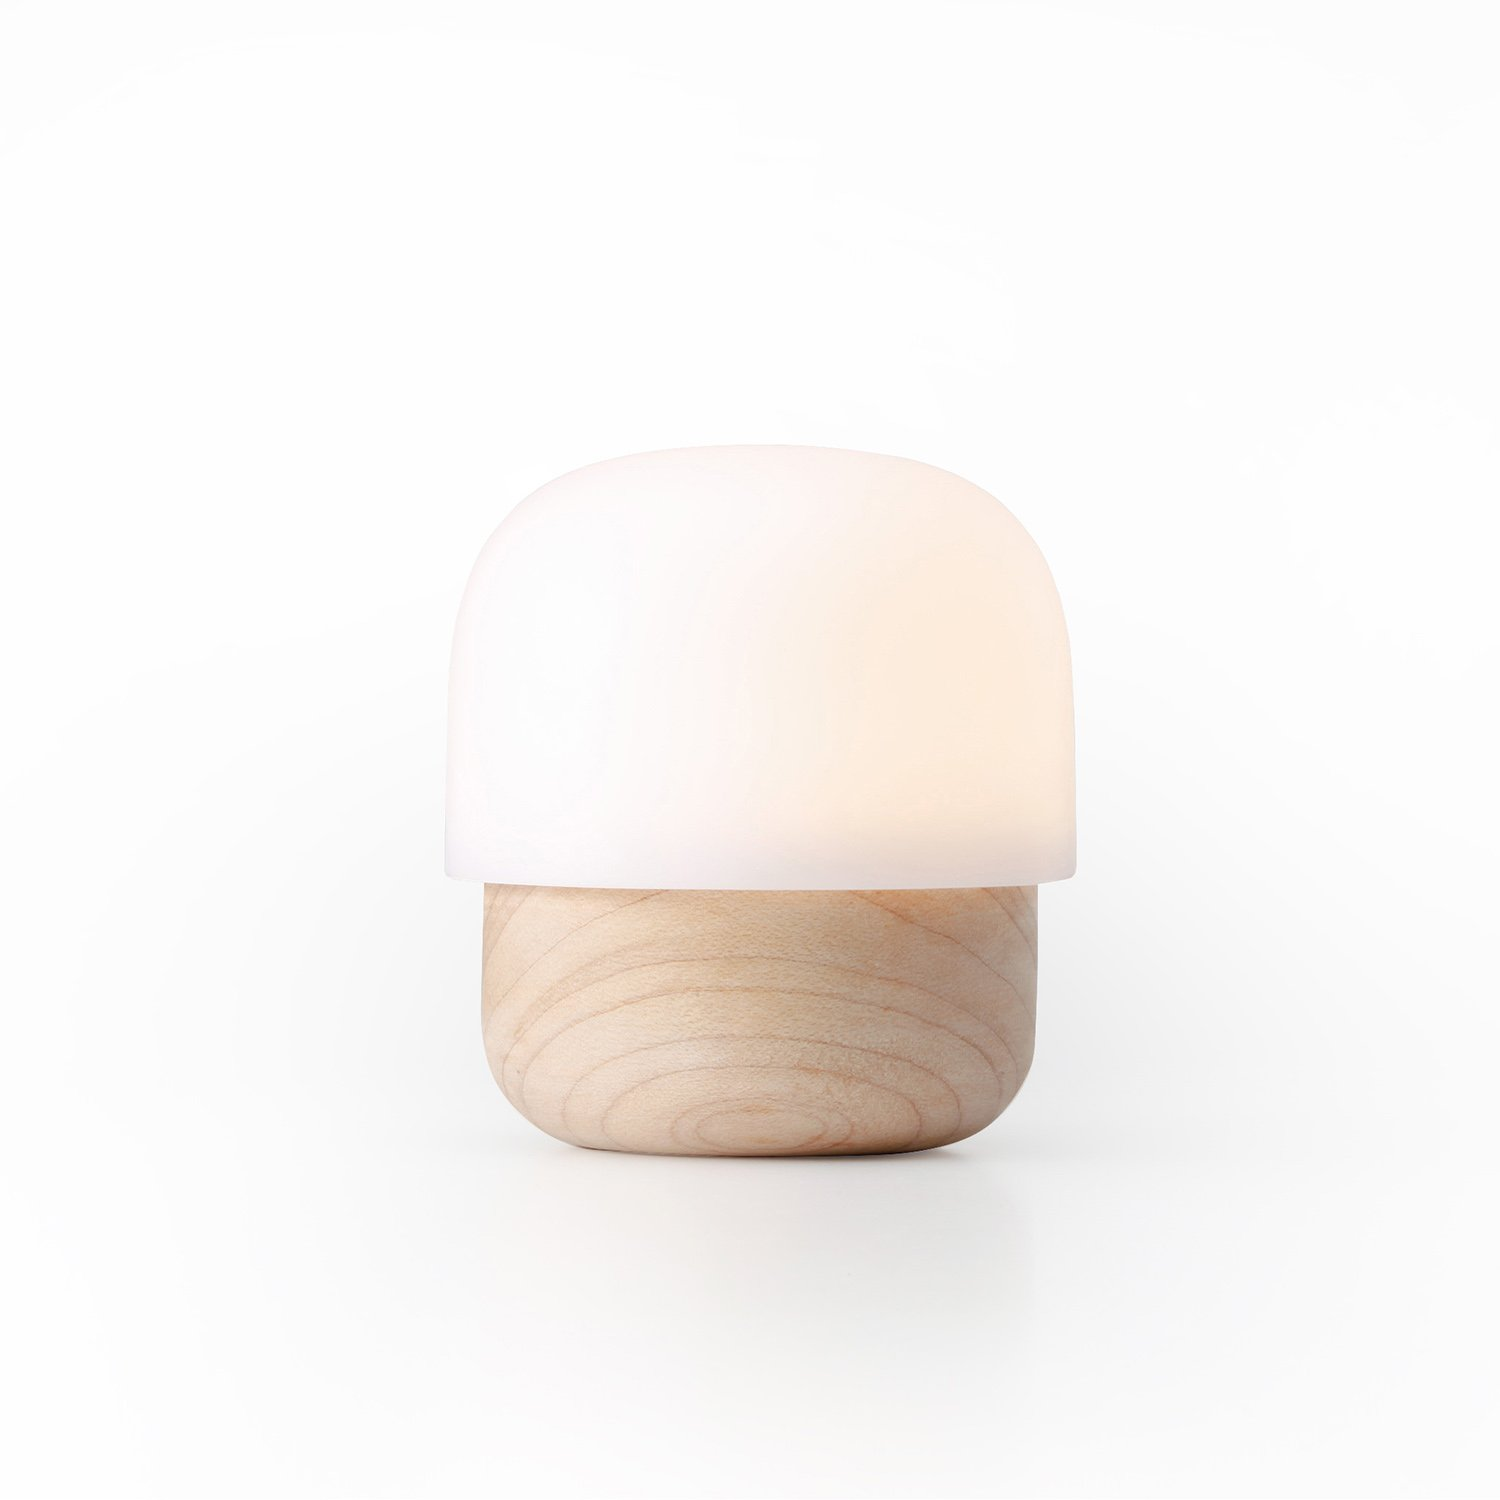 TAKIESO Mini Mushroom Light D2 ZIISTLE, Night Light for Kids in The Bedroom, Mini-Size Portable, Built-in LED Beads Close to Nature Light (Maple Wood & Anti-Allergy PC). by TAKIESO (Image #1)